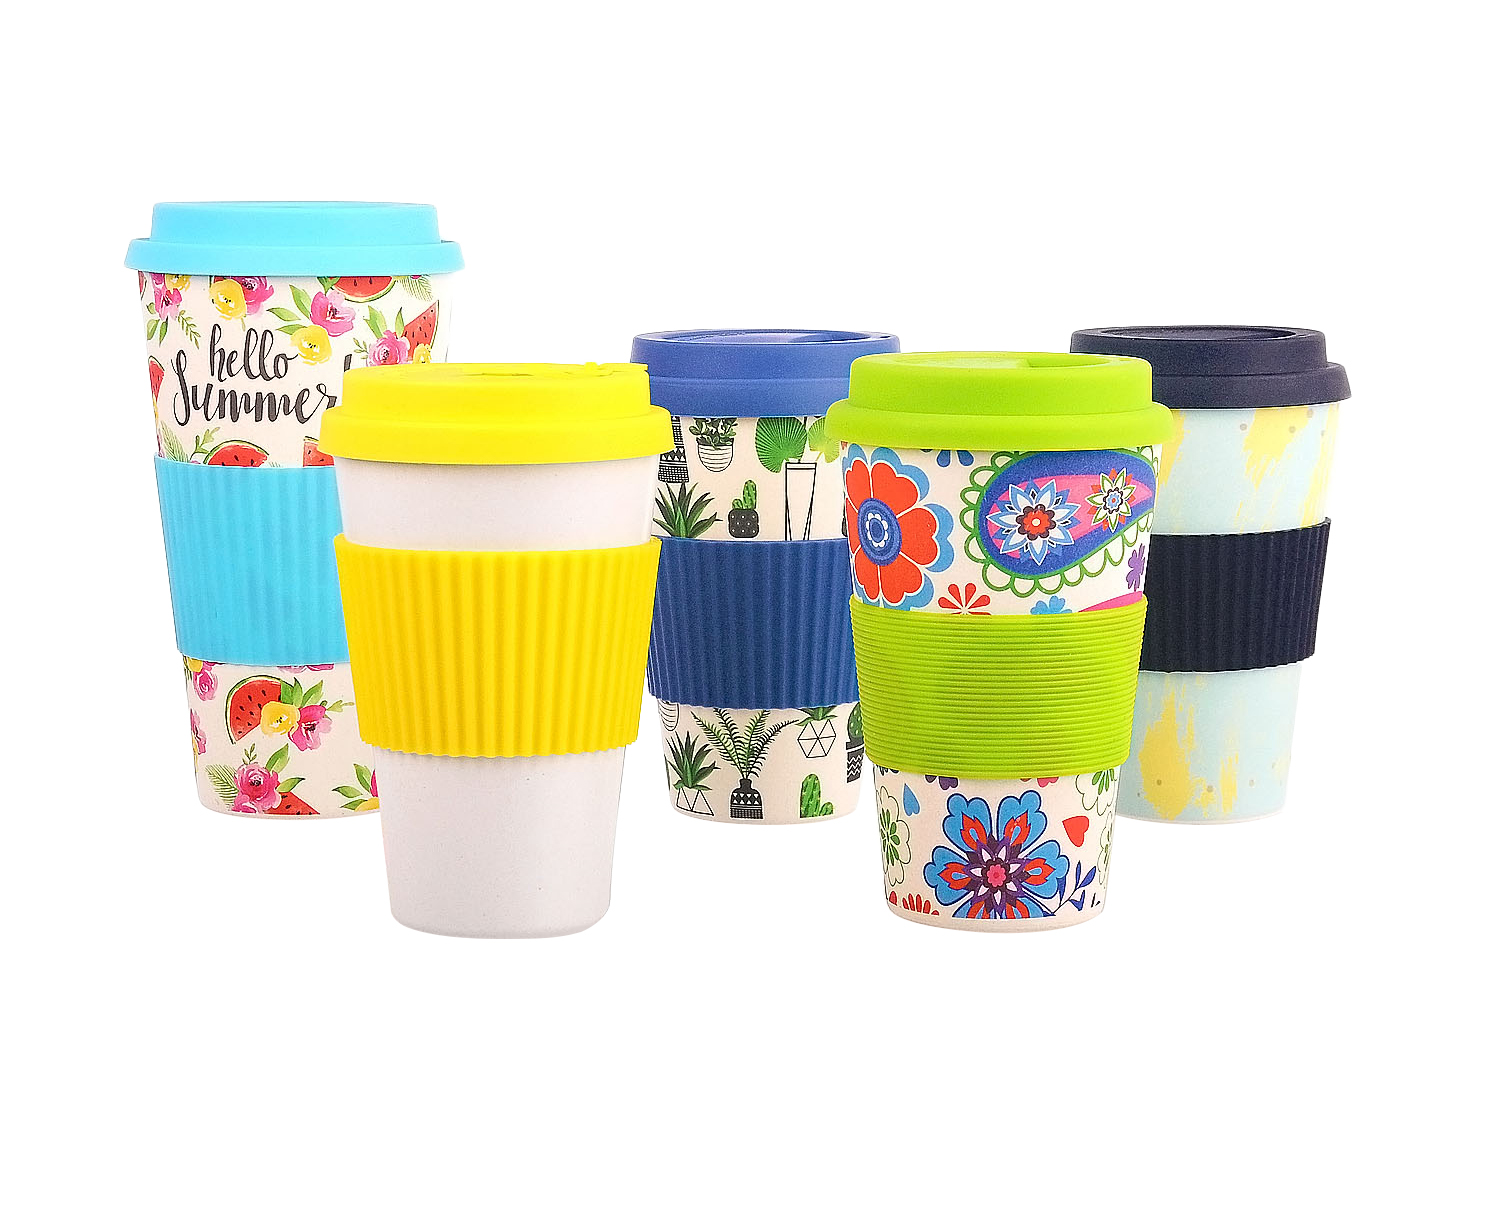 230ml Custom logo Pure Color 100% Completely Biodegradable Bamboo Fiber Tea Milk Mug Drink  Coffee Cup With Silicon Lid